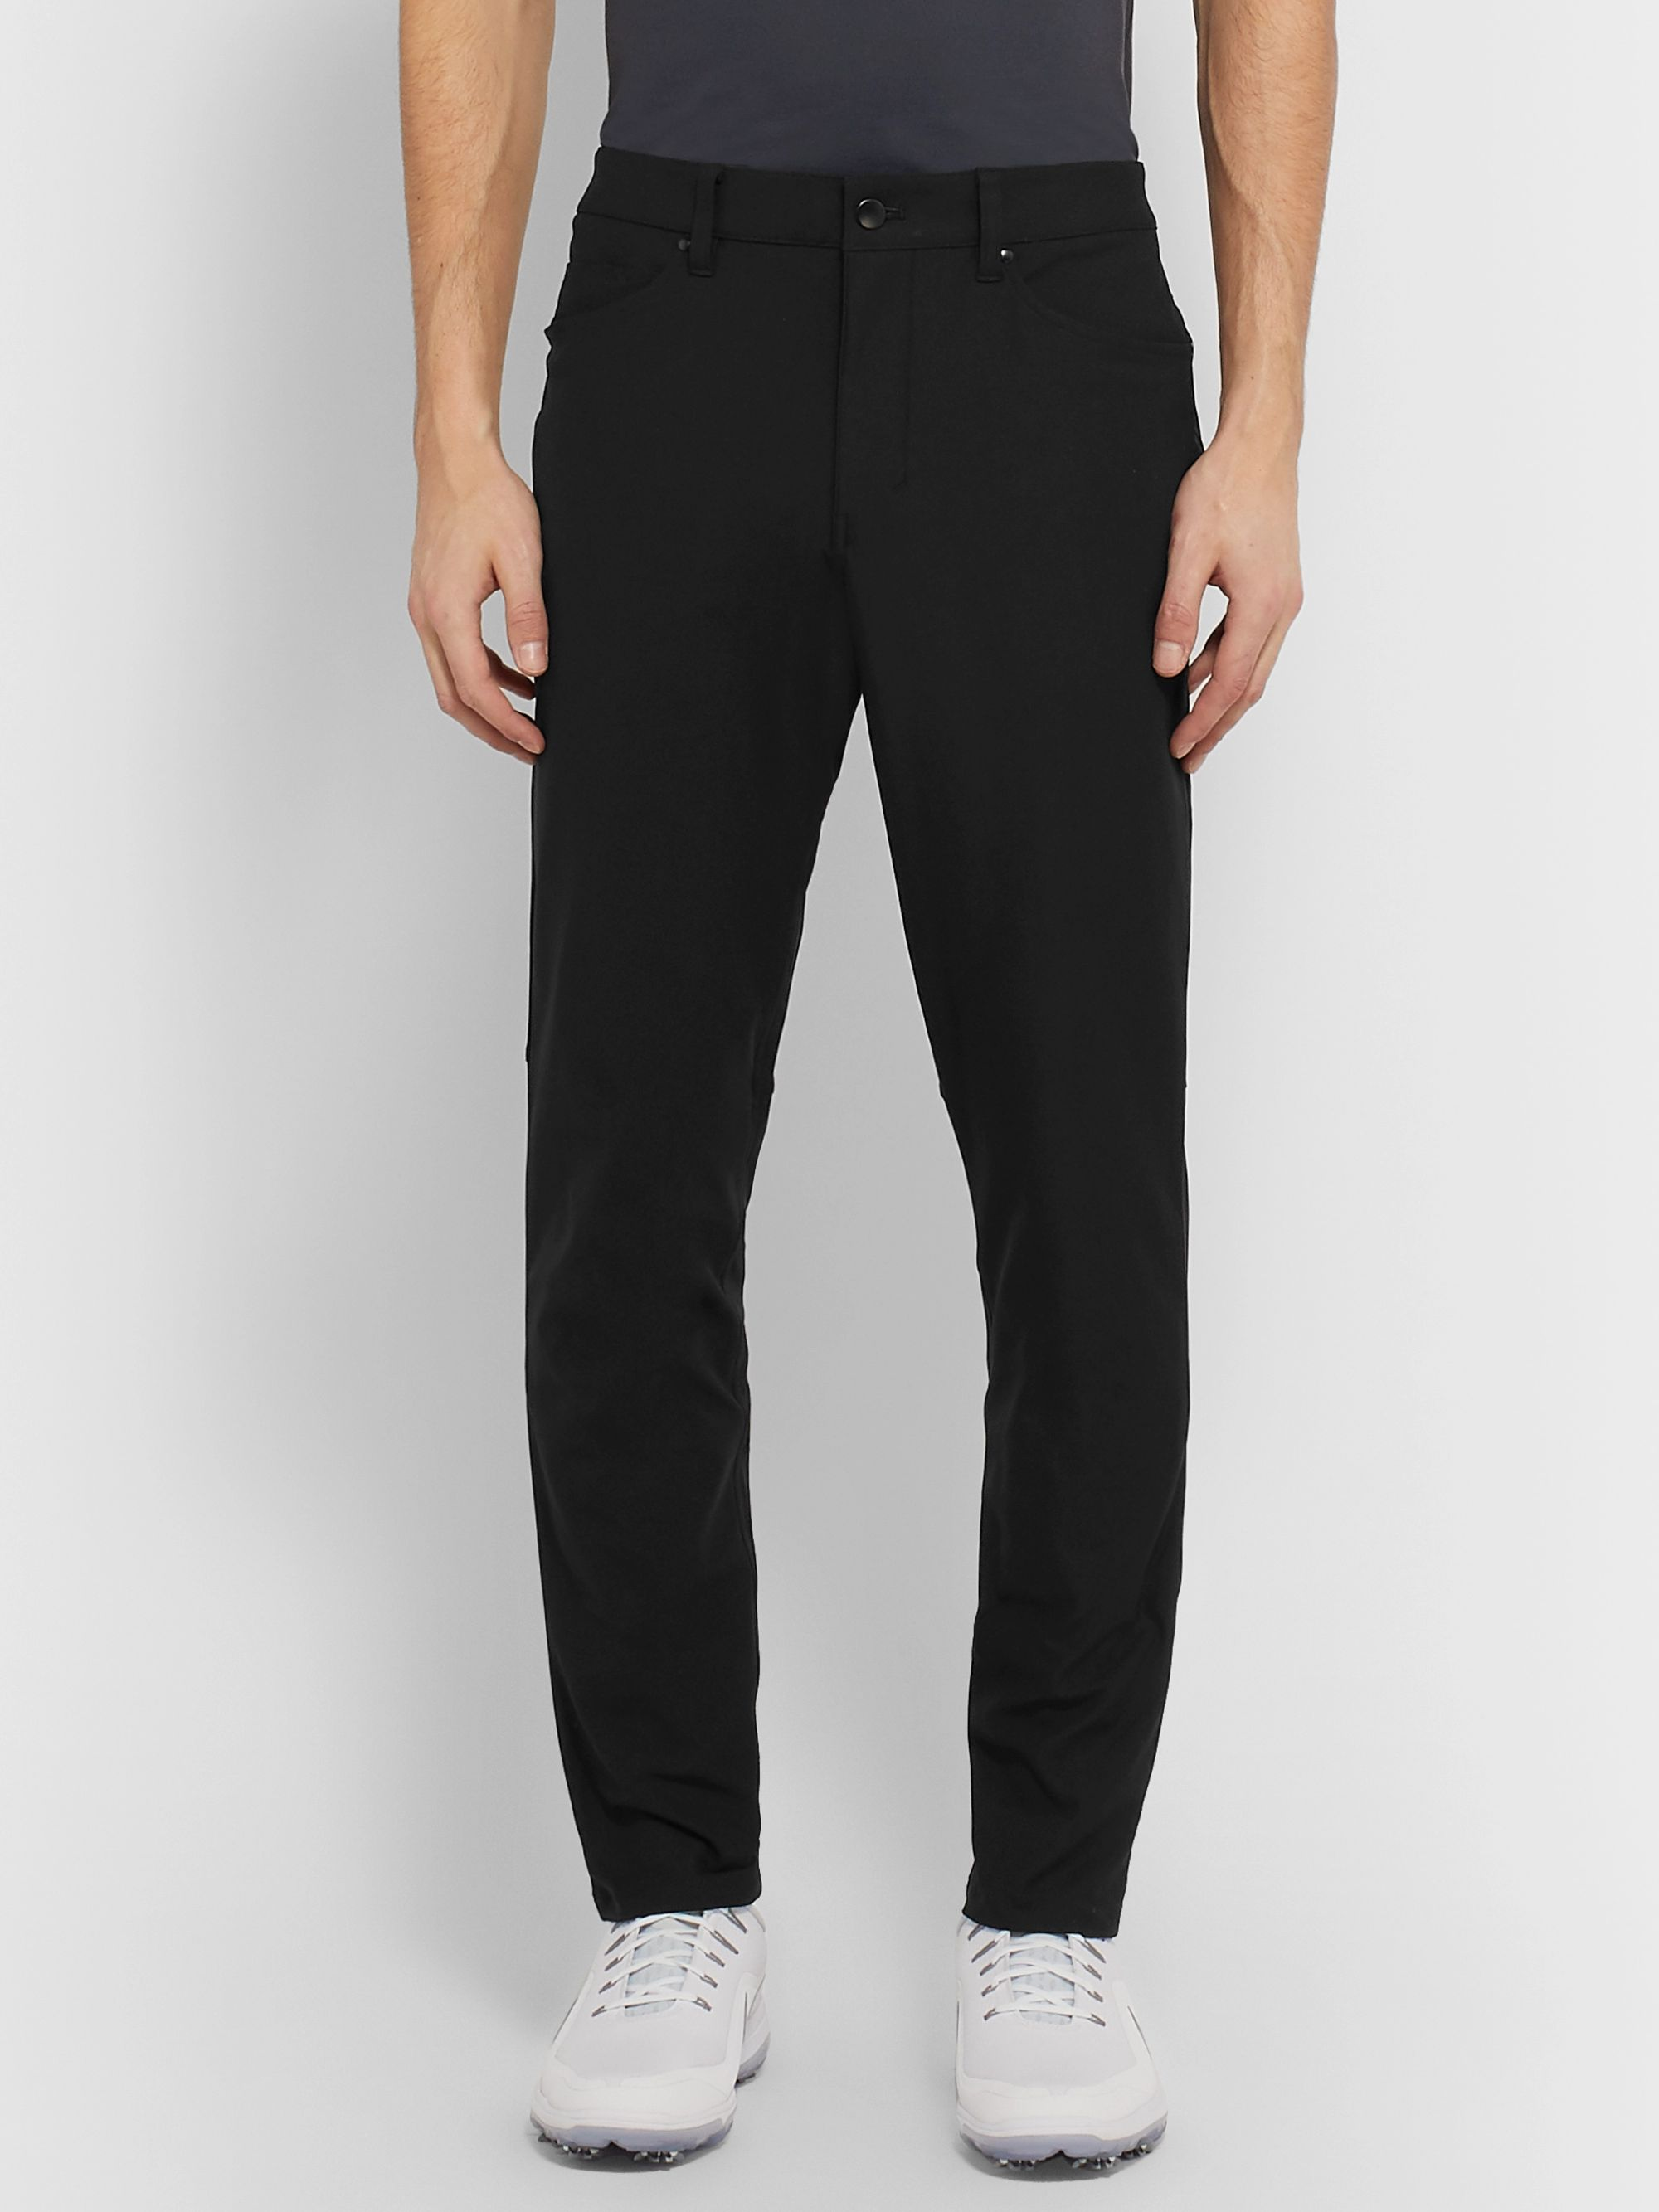 Lululemon Black ABC Warpstreme Trousers